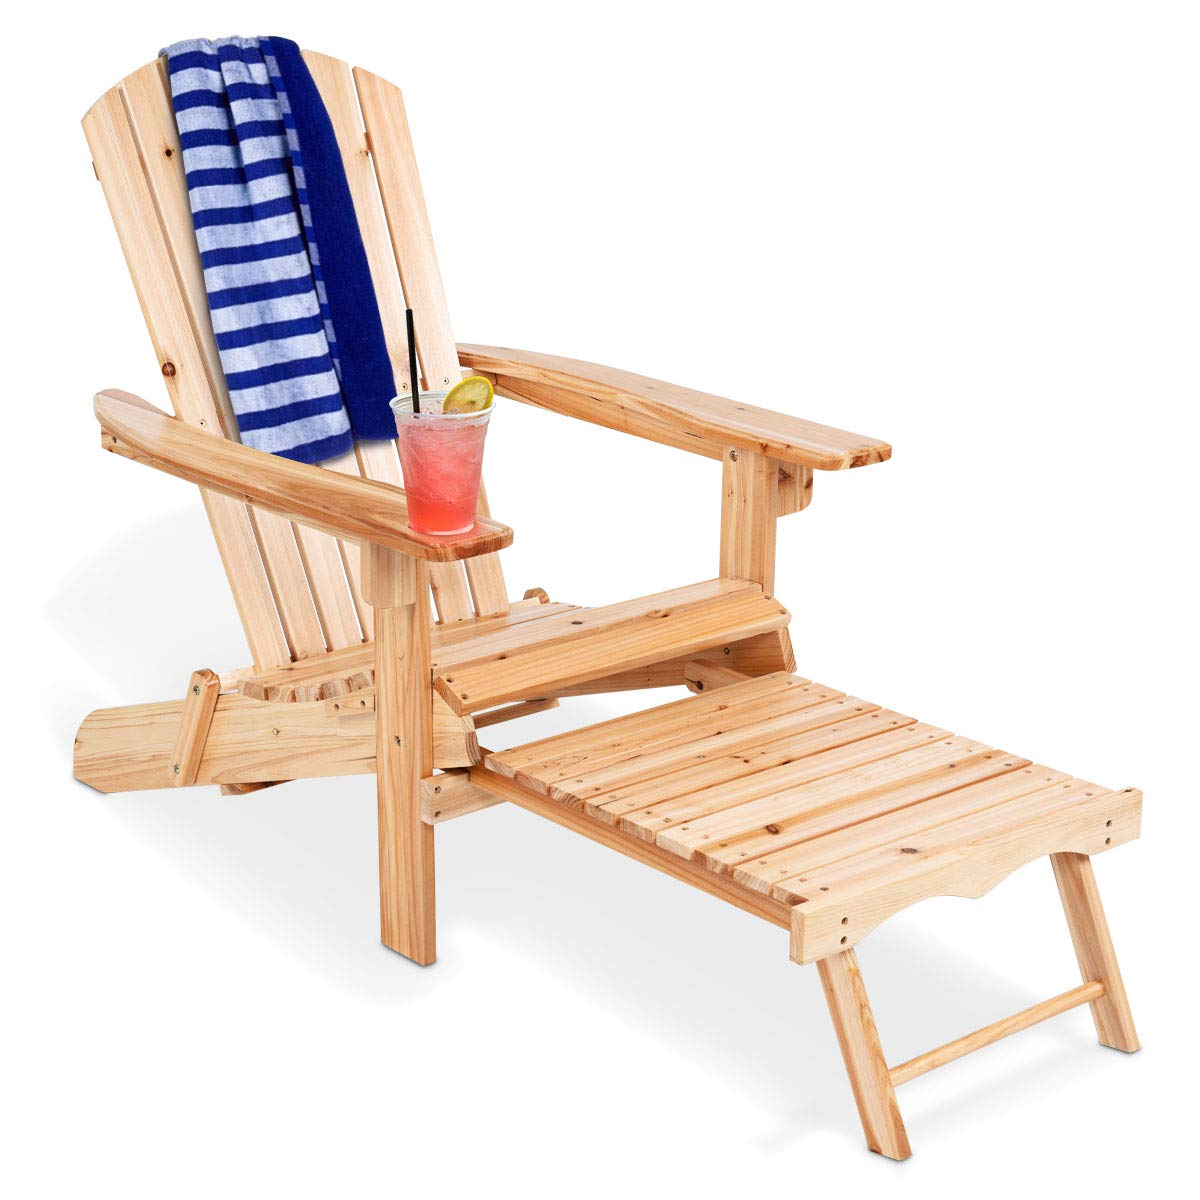 Giantex Adirondack Chair Foldable with Pull-Out Footrest, Outdoor Modern of 100% Solid Wood for Patio Decor Lawn Garden Porch Balcony, Large Wooden Folding Adirondack Chairs by Giantex